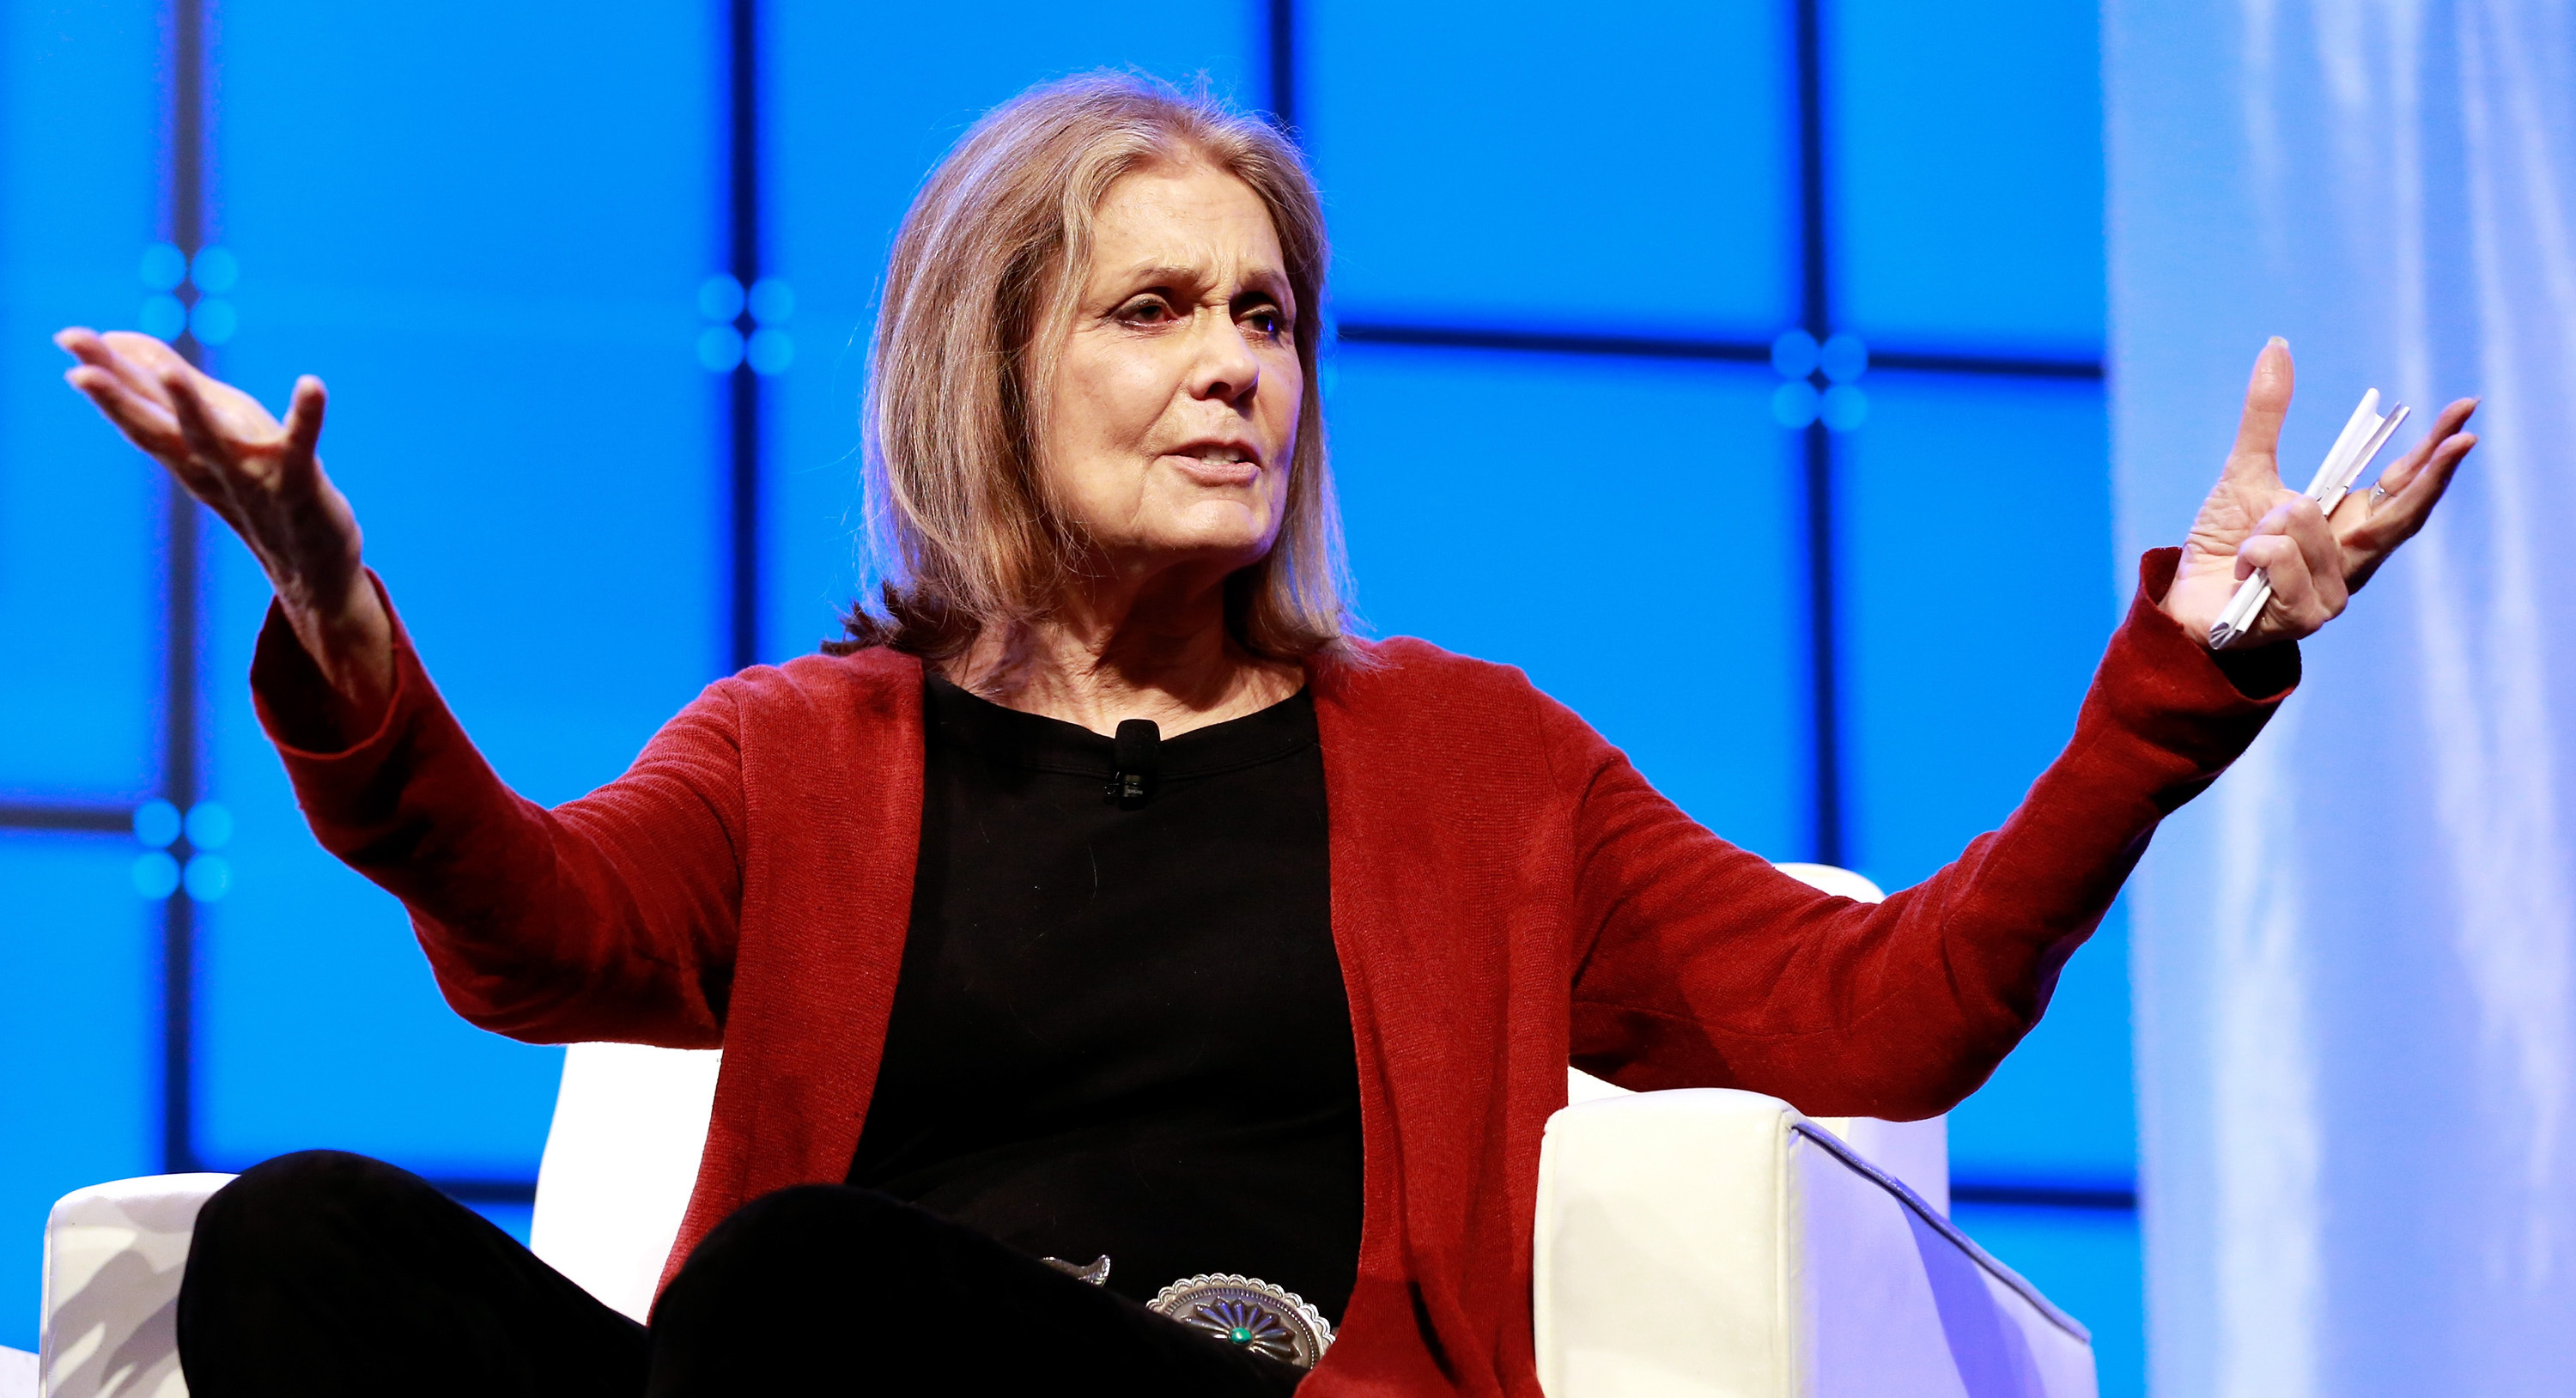 Gloria Steinem sets the record straight on black women's leadership.